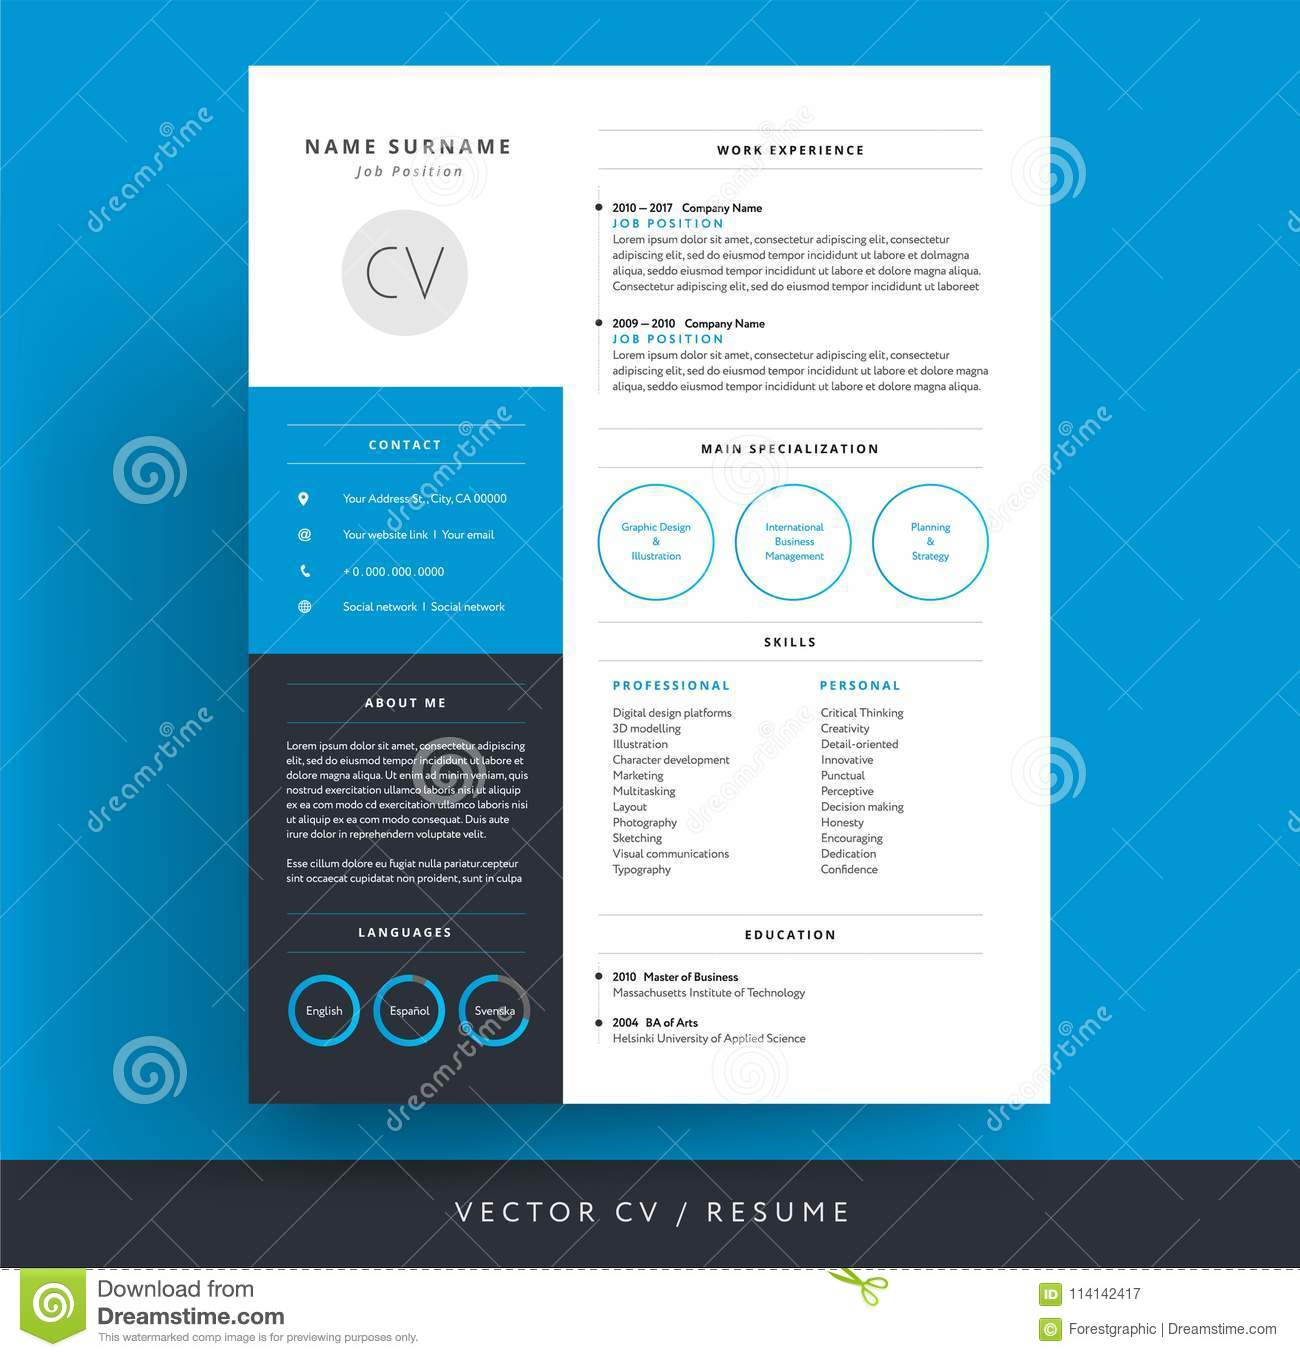 professional cv resume template blue background color minimalist vector stock Resume Resume Picture Background Color